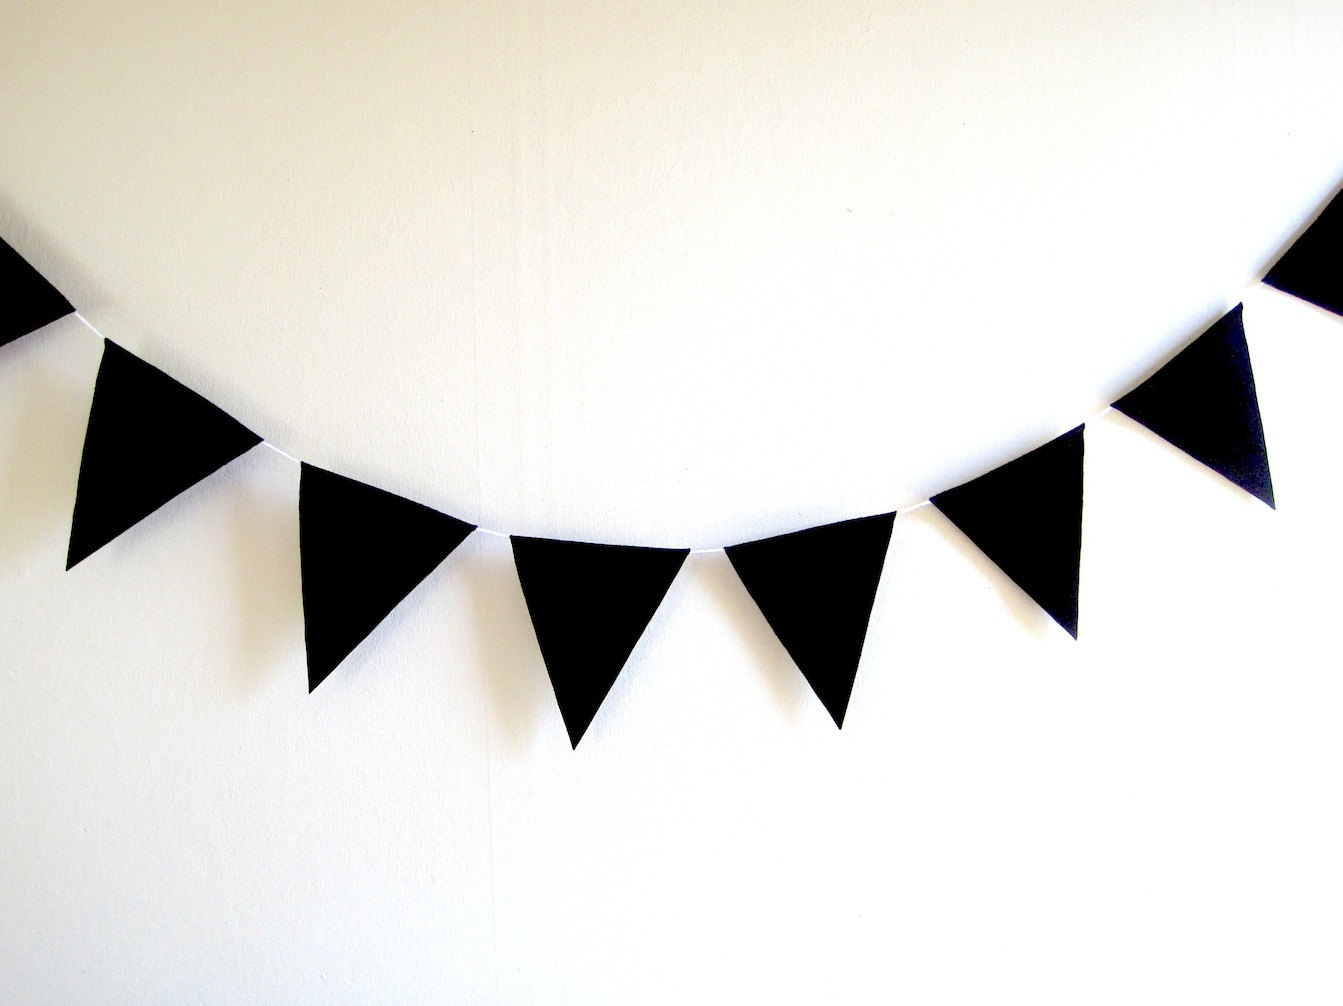 Flag pennant banner black and white clipart clip art black and white library Pennant Banner Clipart | Free download best Pennant Banner Clipart ... clip art black and white library